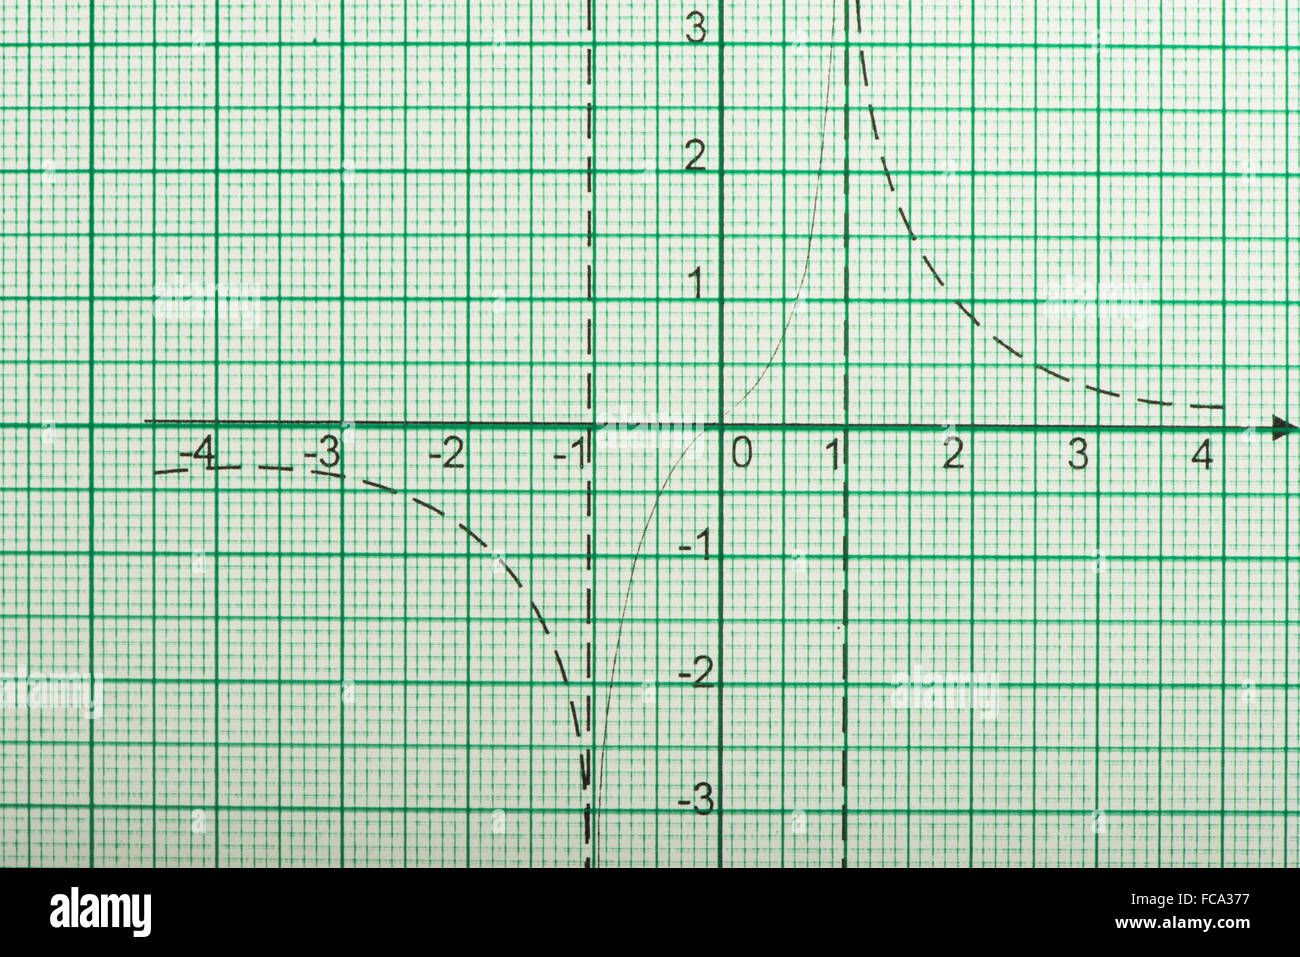 Mathematical drawings, concepts and strategies - Stock Image